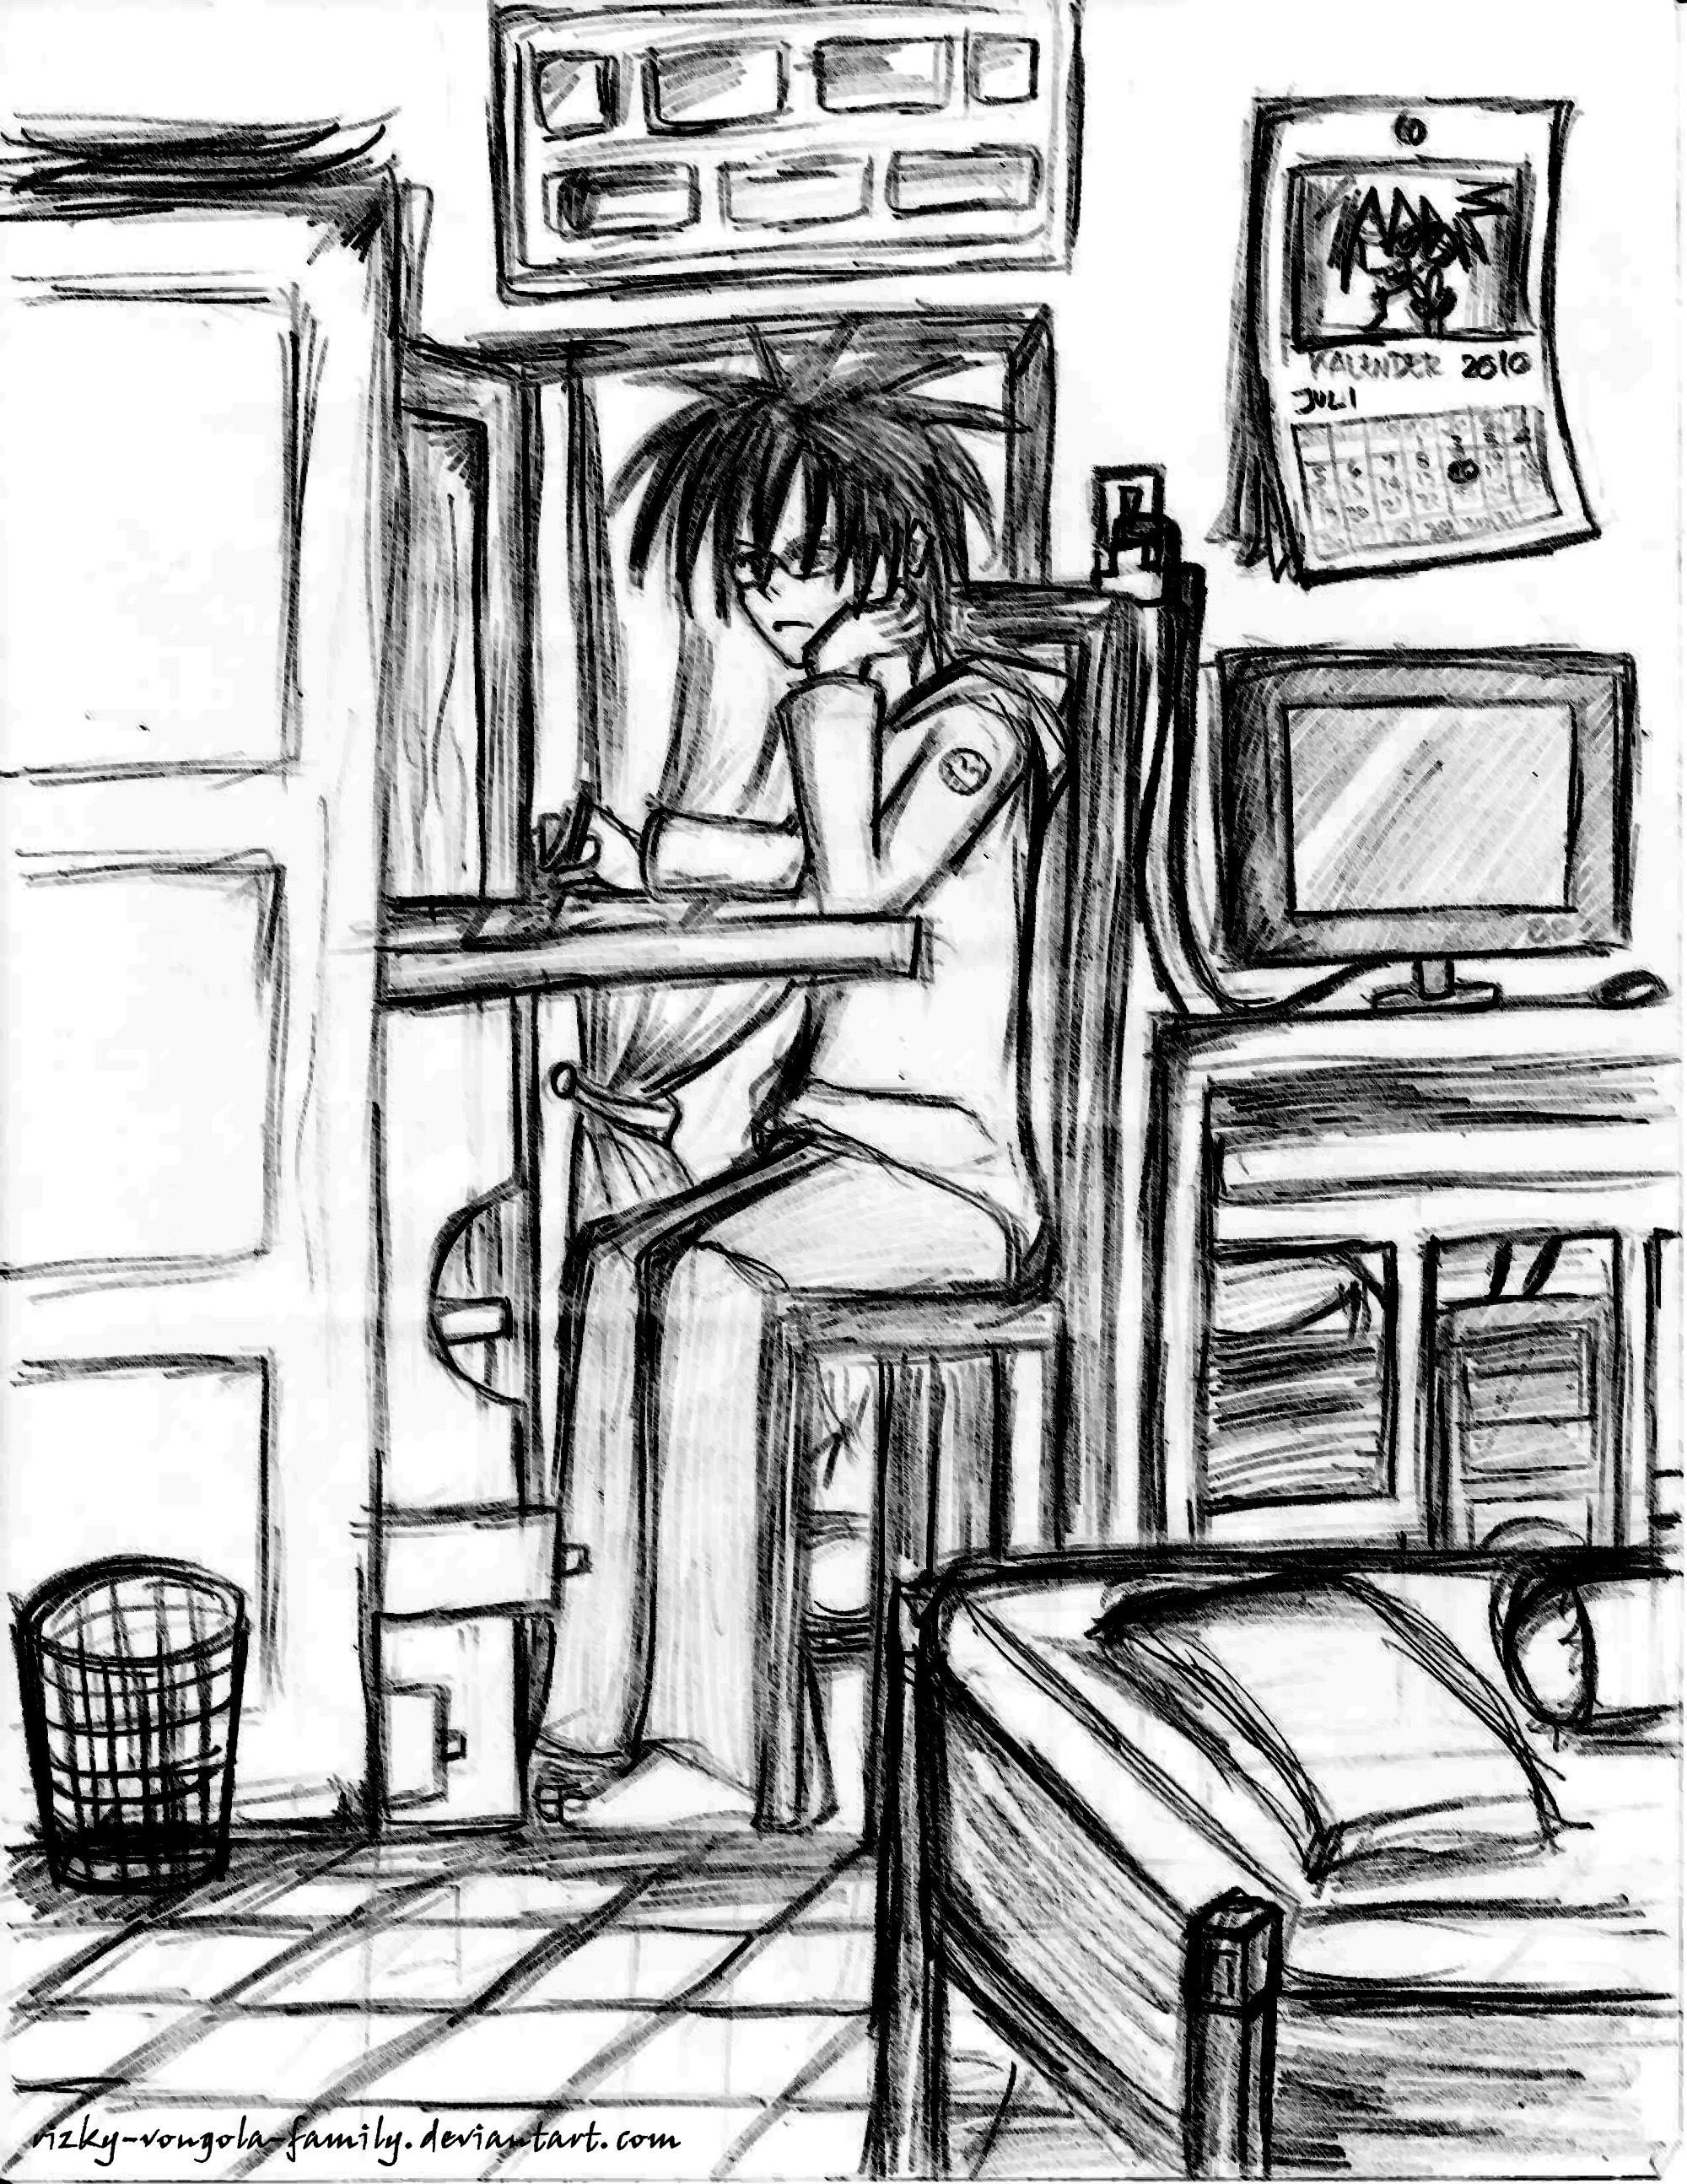 Drawing in my room by rizky vongola family on deviantart for Draw my room